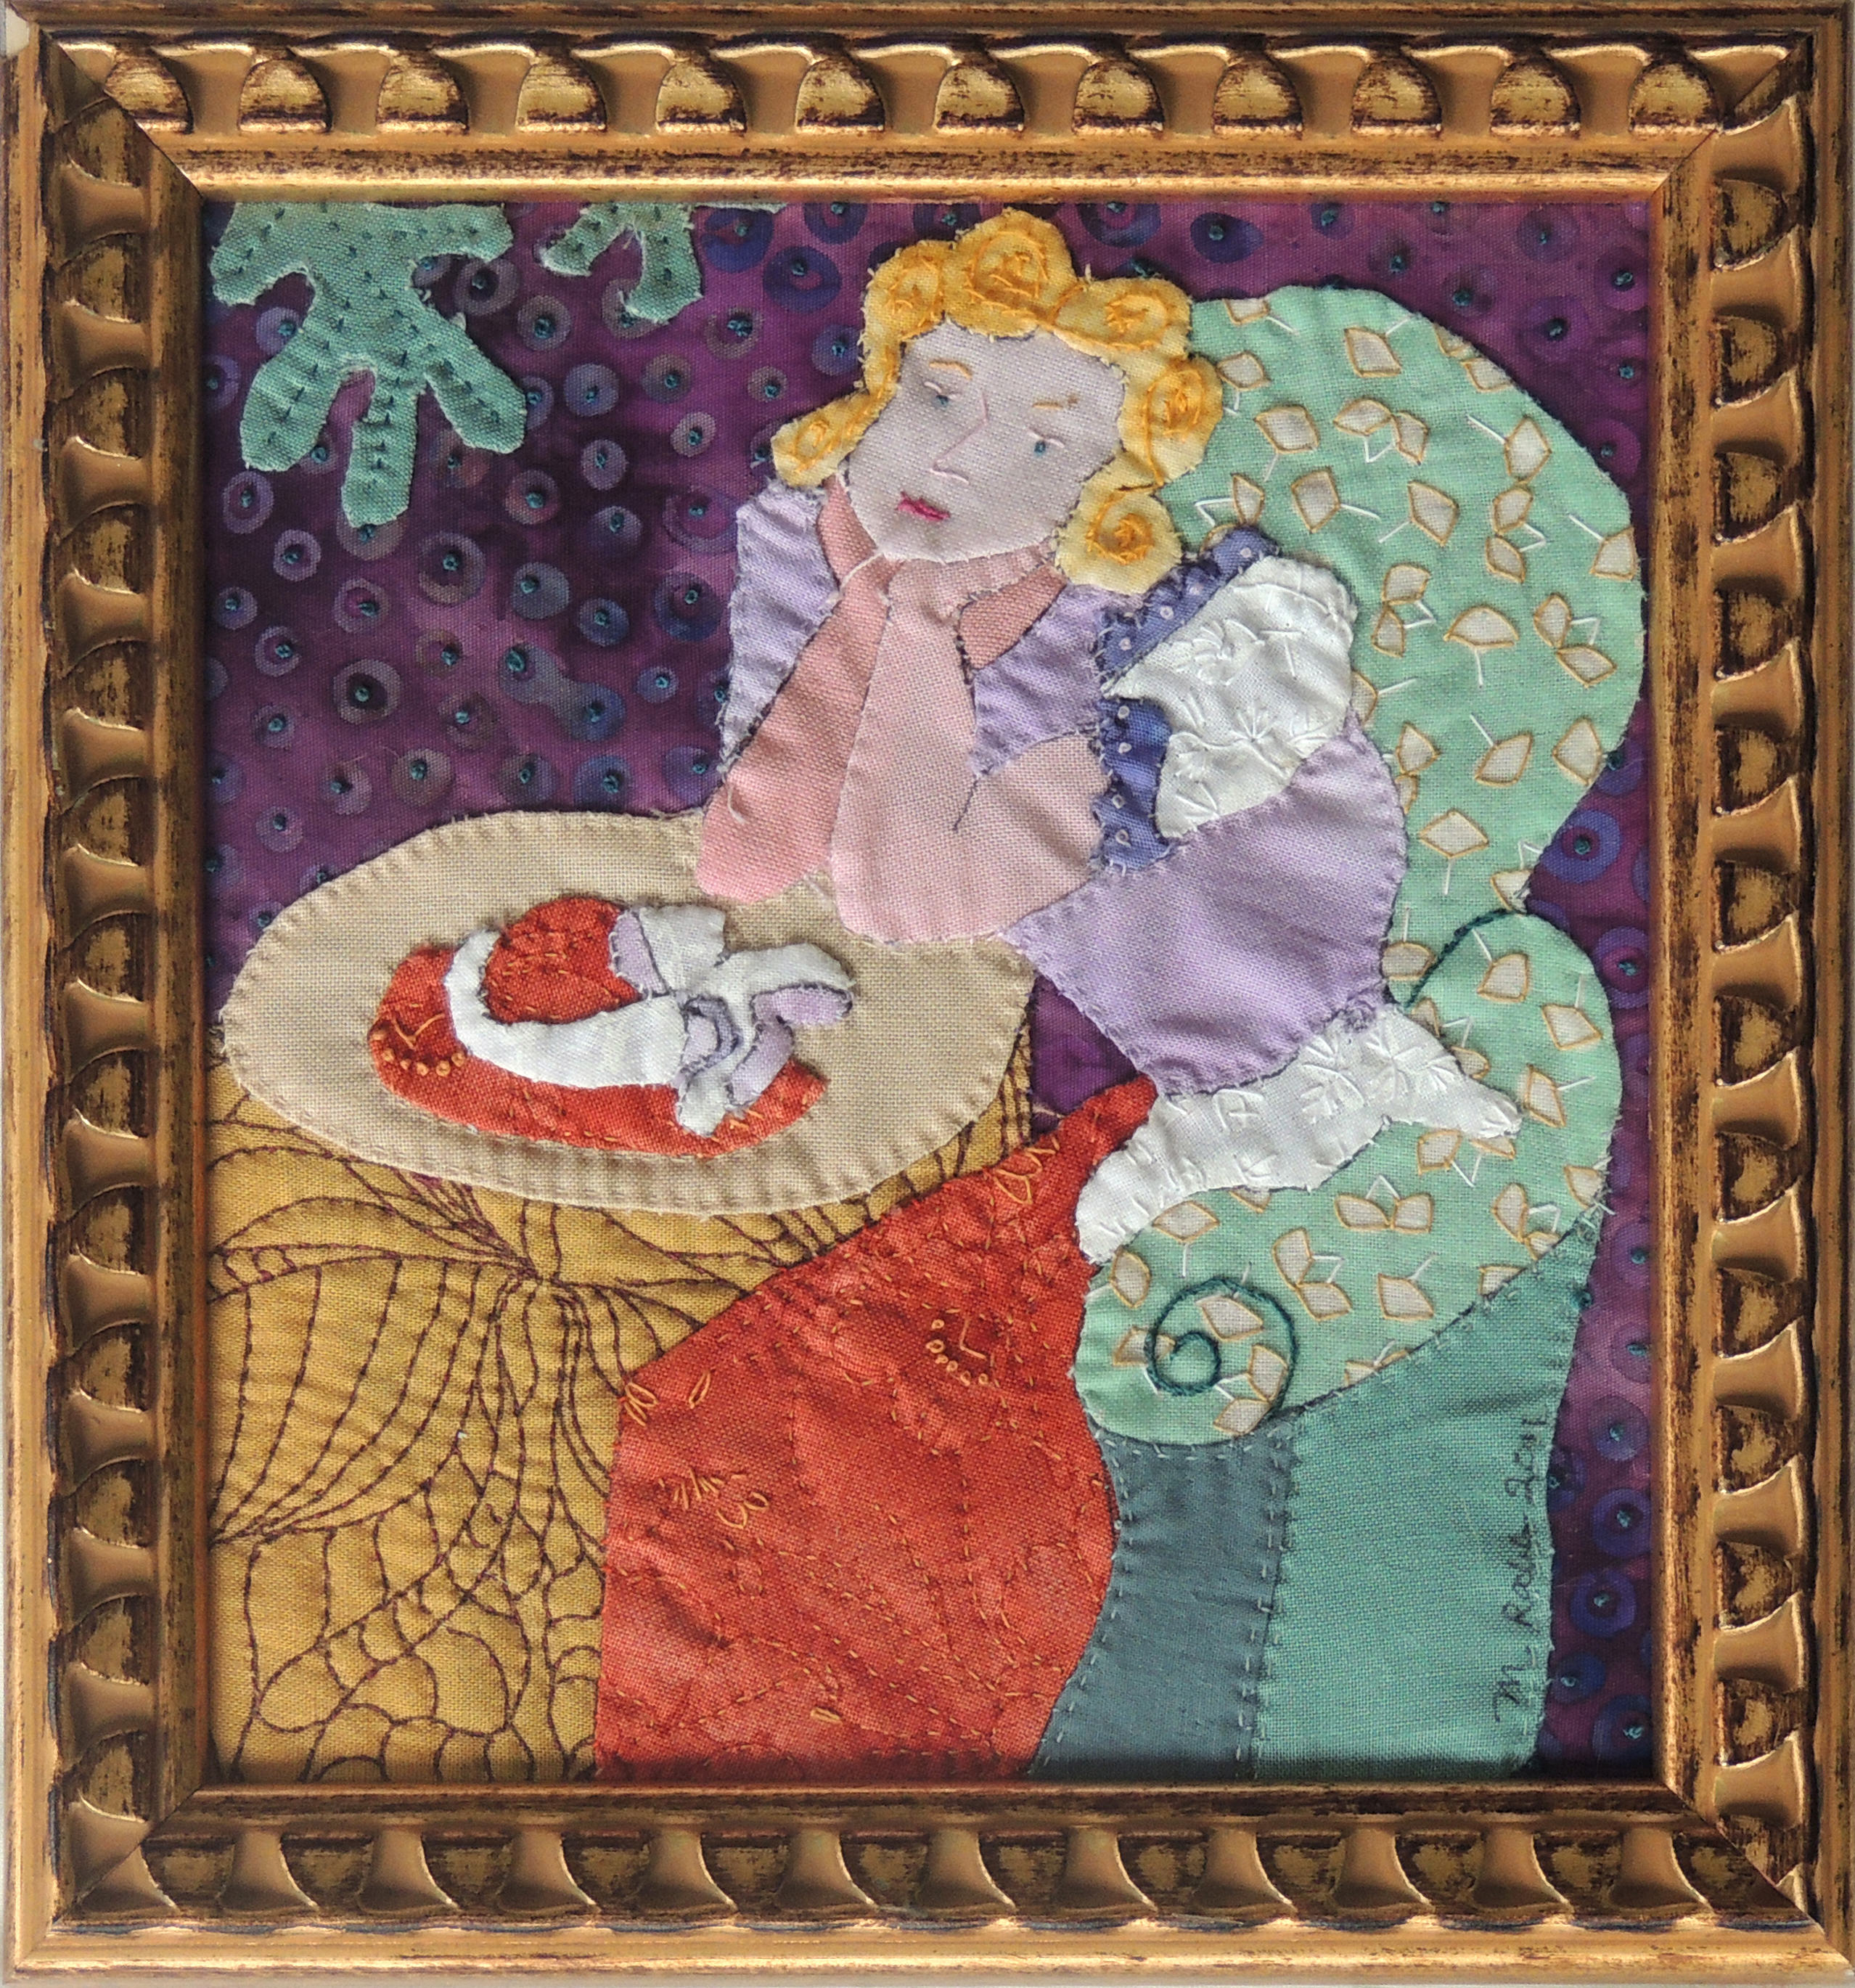 Marianne Rabb Britton | MATISSE LADY | Fabric & Embroidery | 8 x 8"